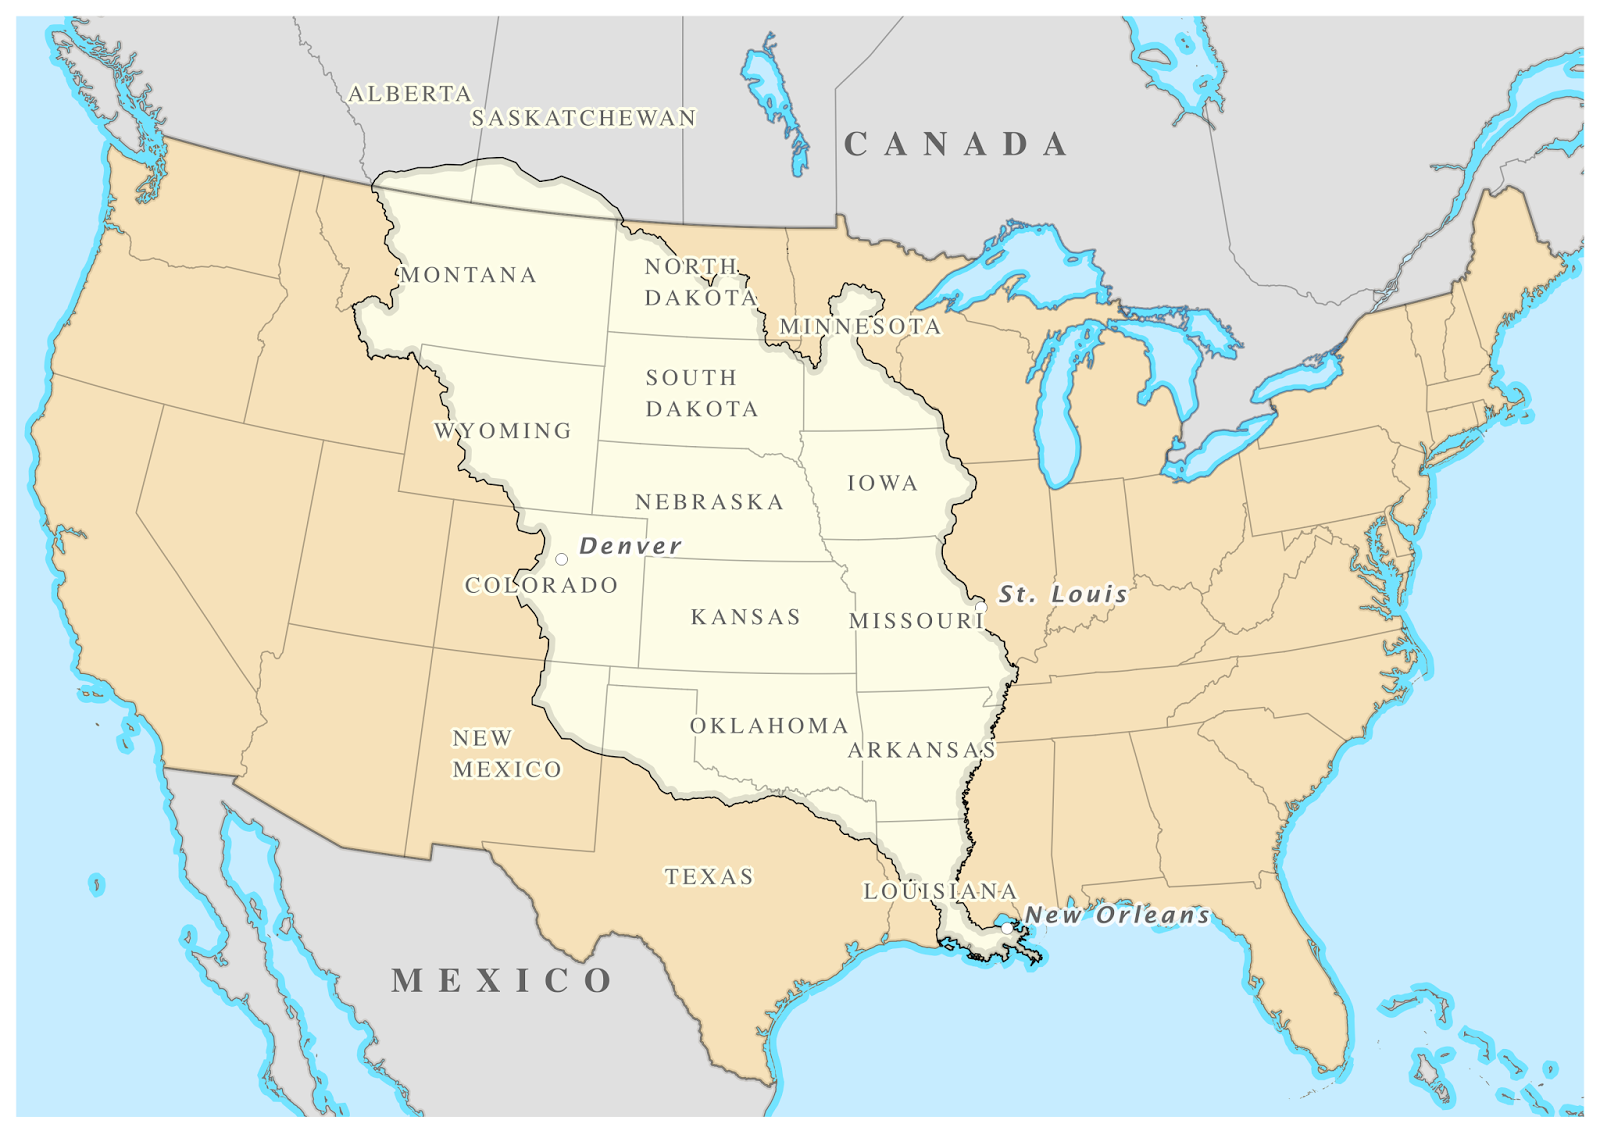 united states map louisiana purchase highlighted